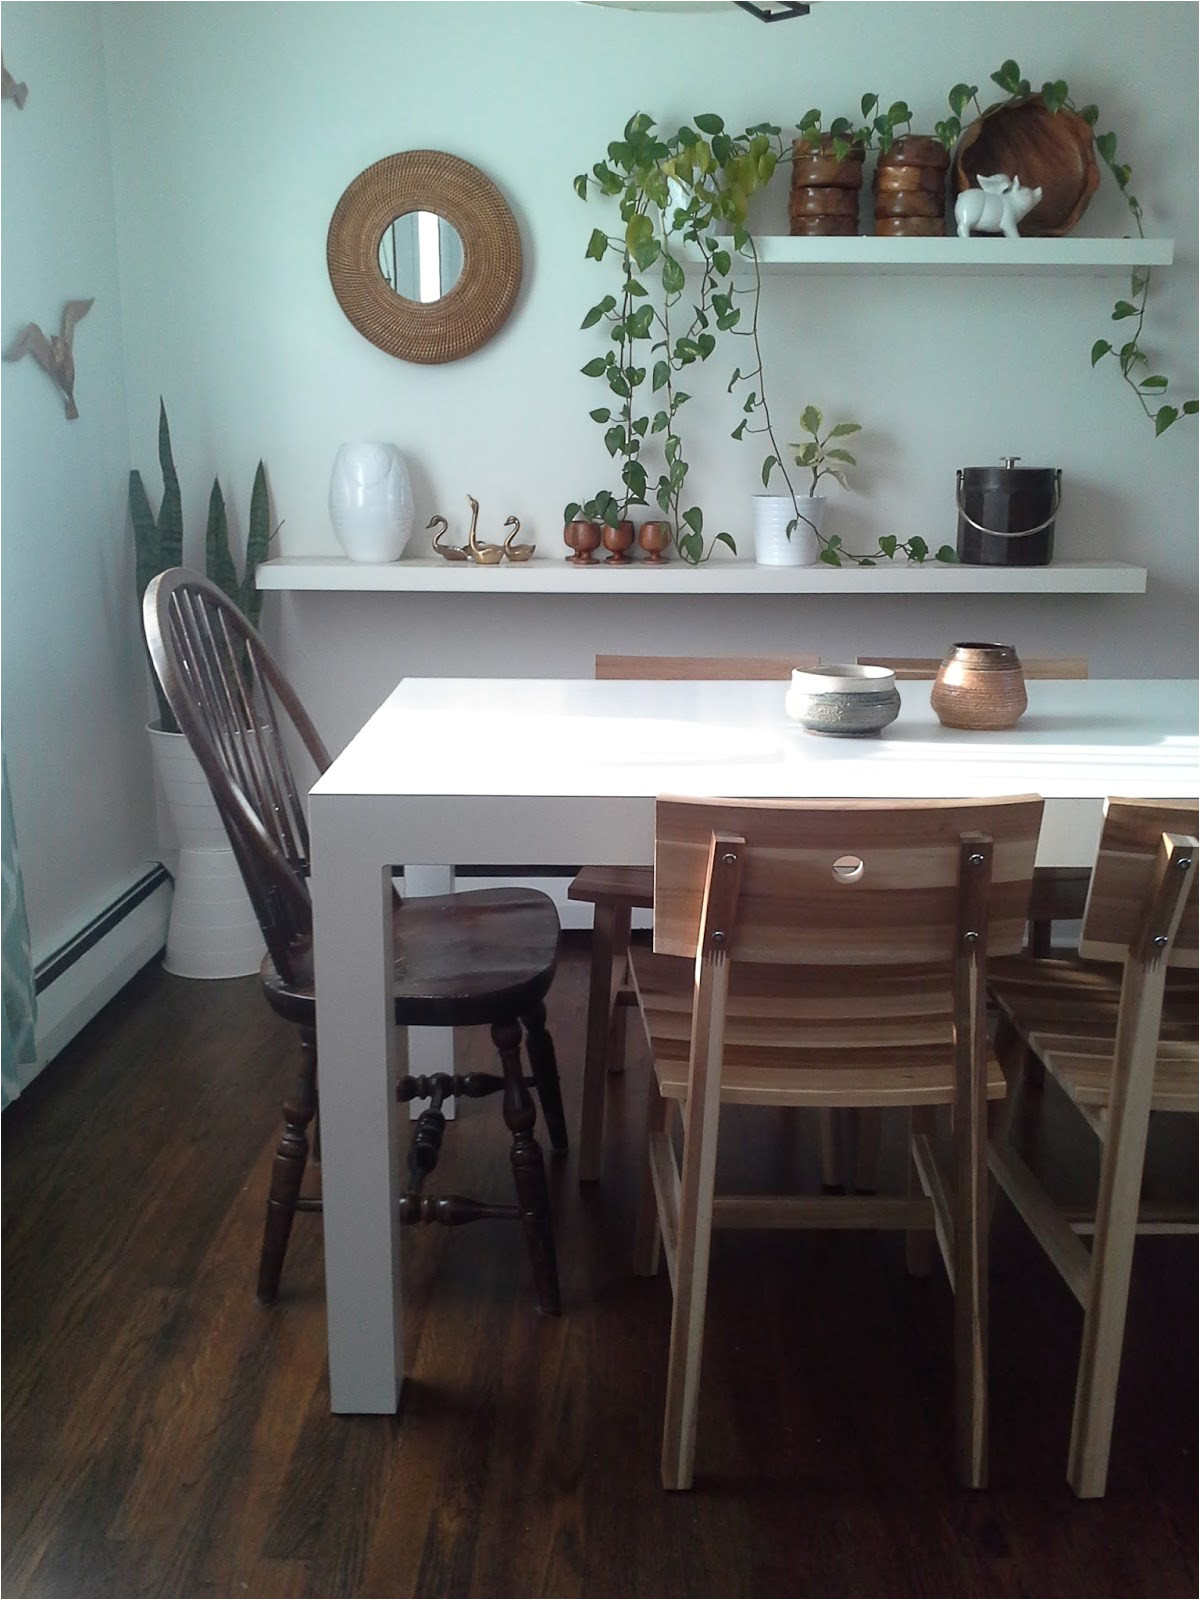 Clear Plastic Dining Chairs Ikea Ikea Dinette Good Ideas for Ikea Dining Room Sets Inspiration Home